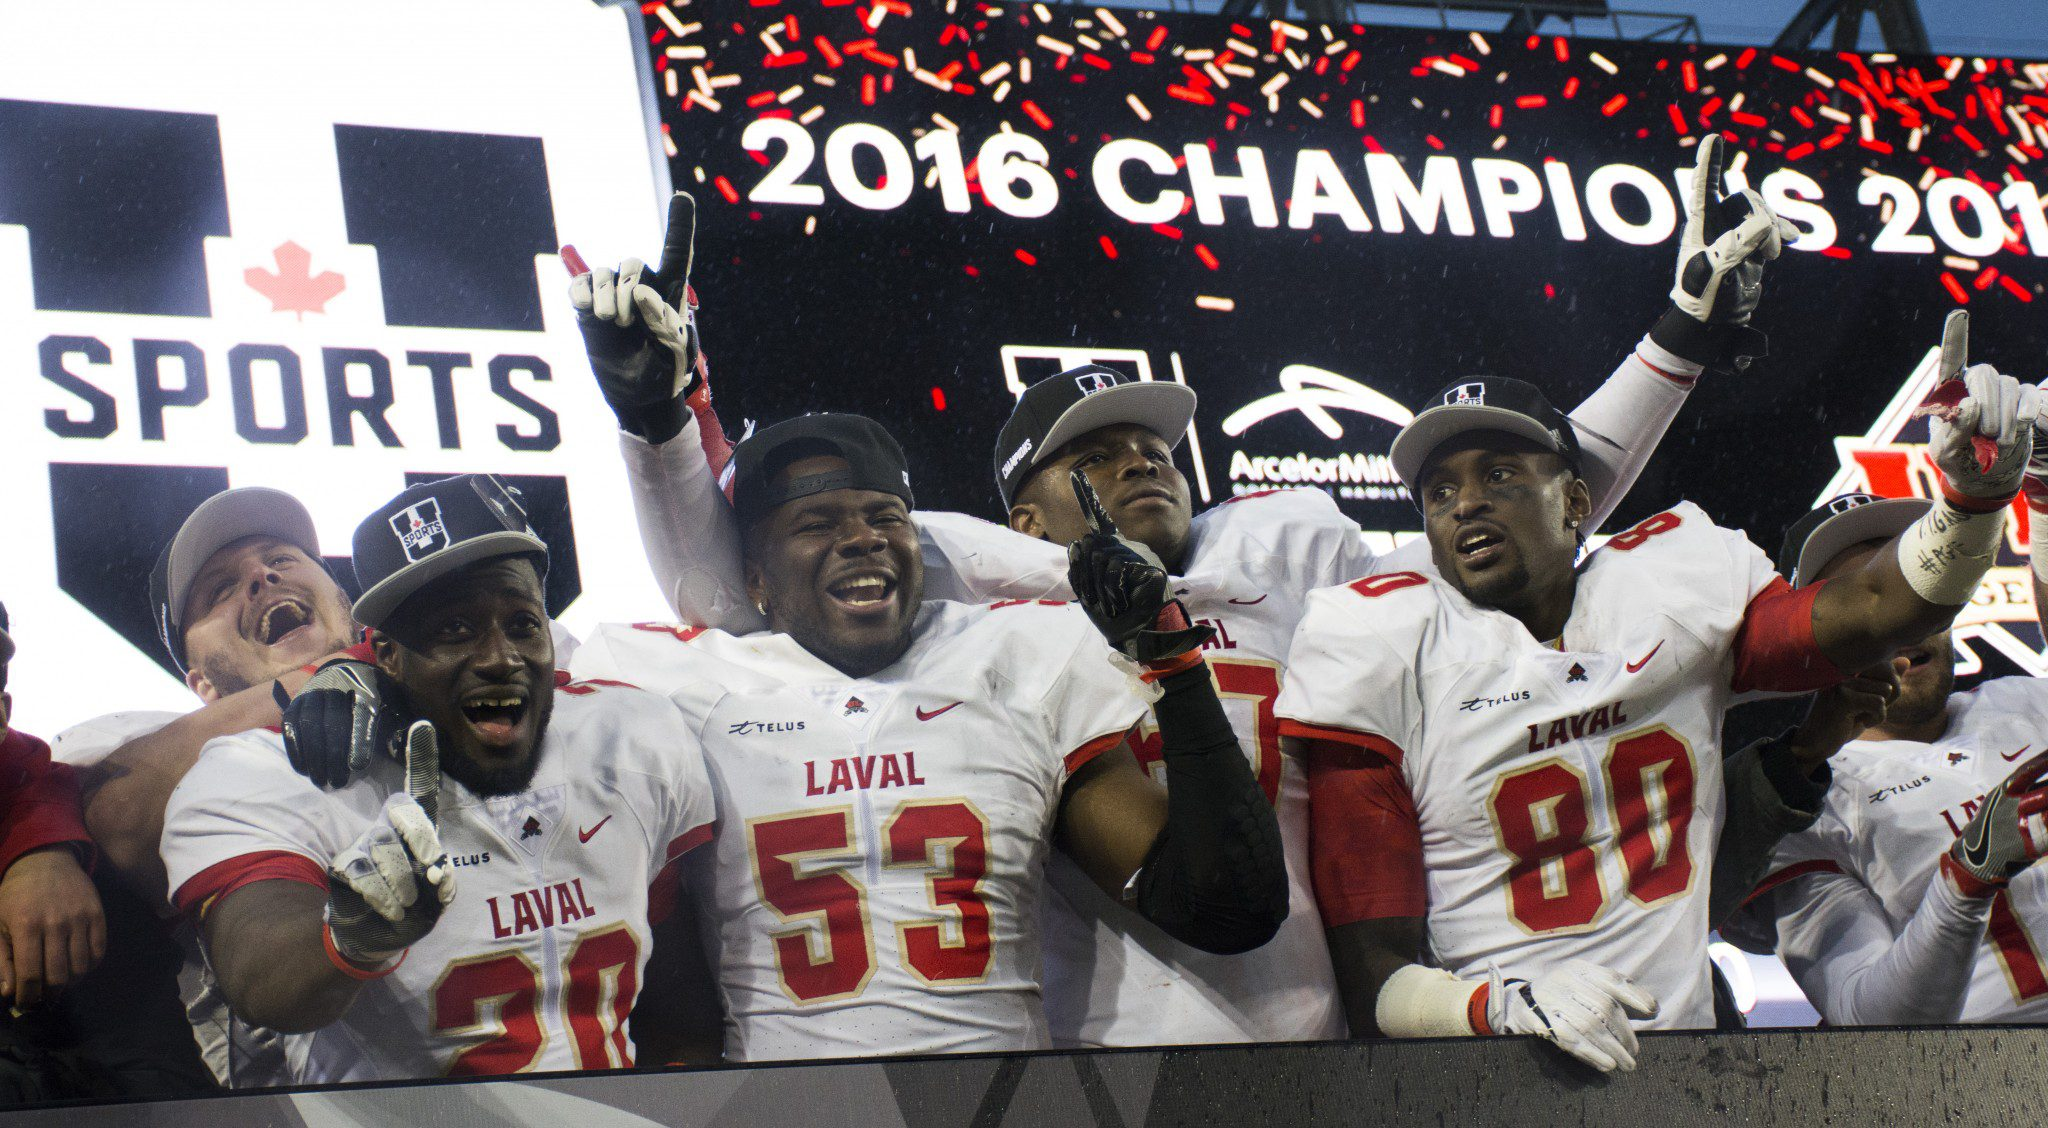 Laval players celebrate